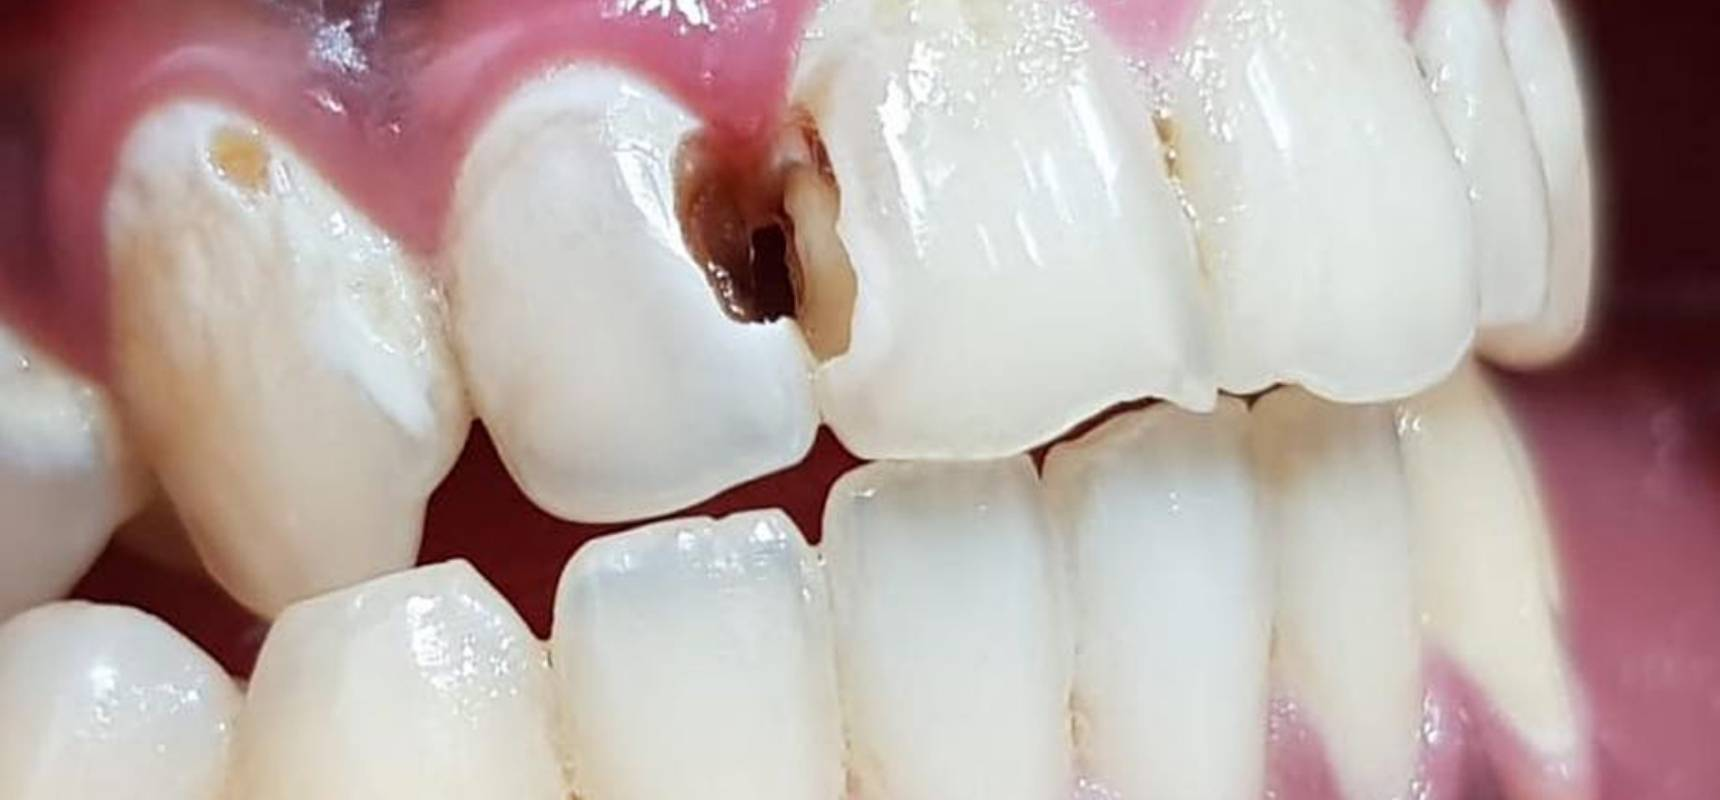 Before-Composite filling after removal of decay